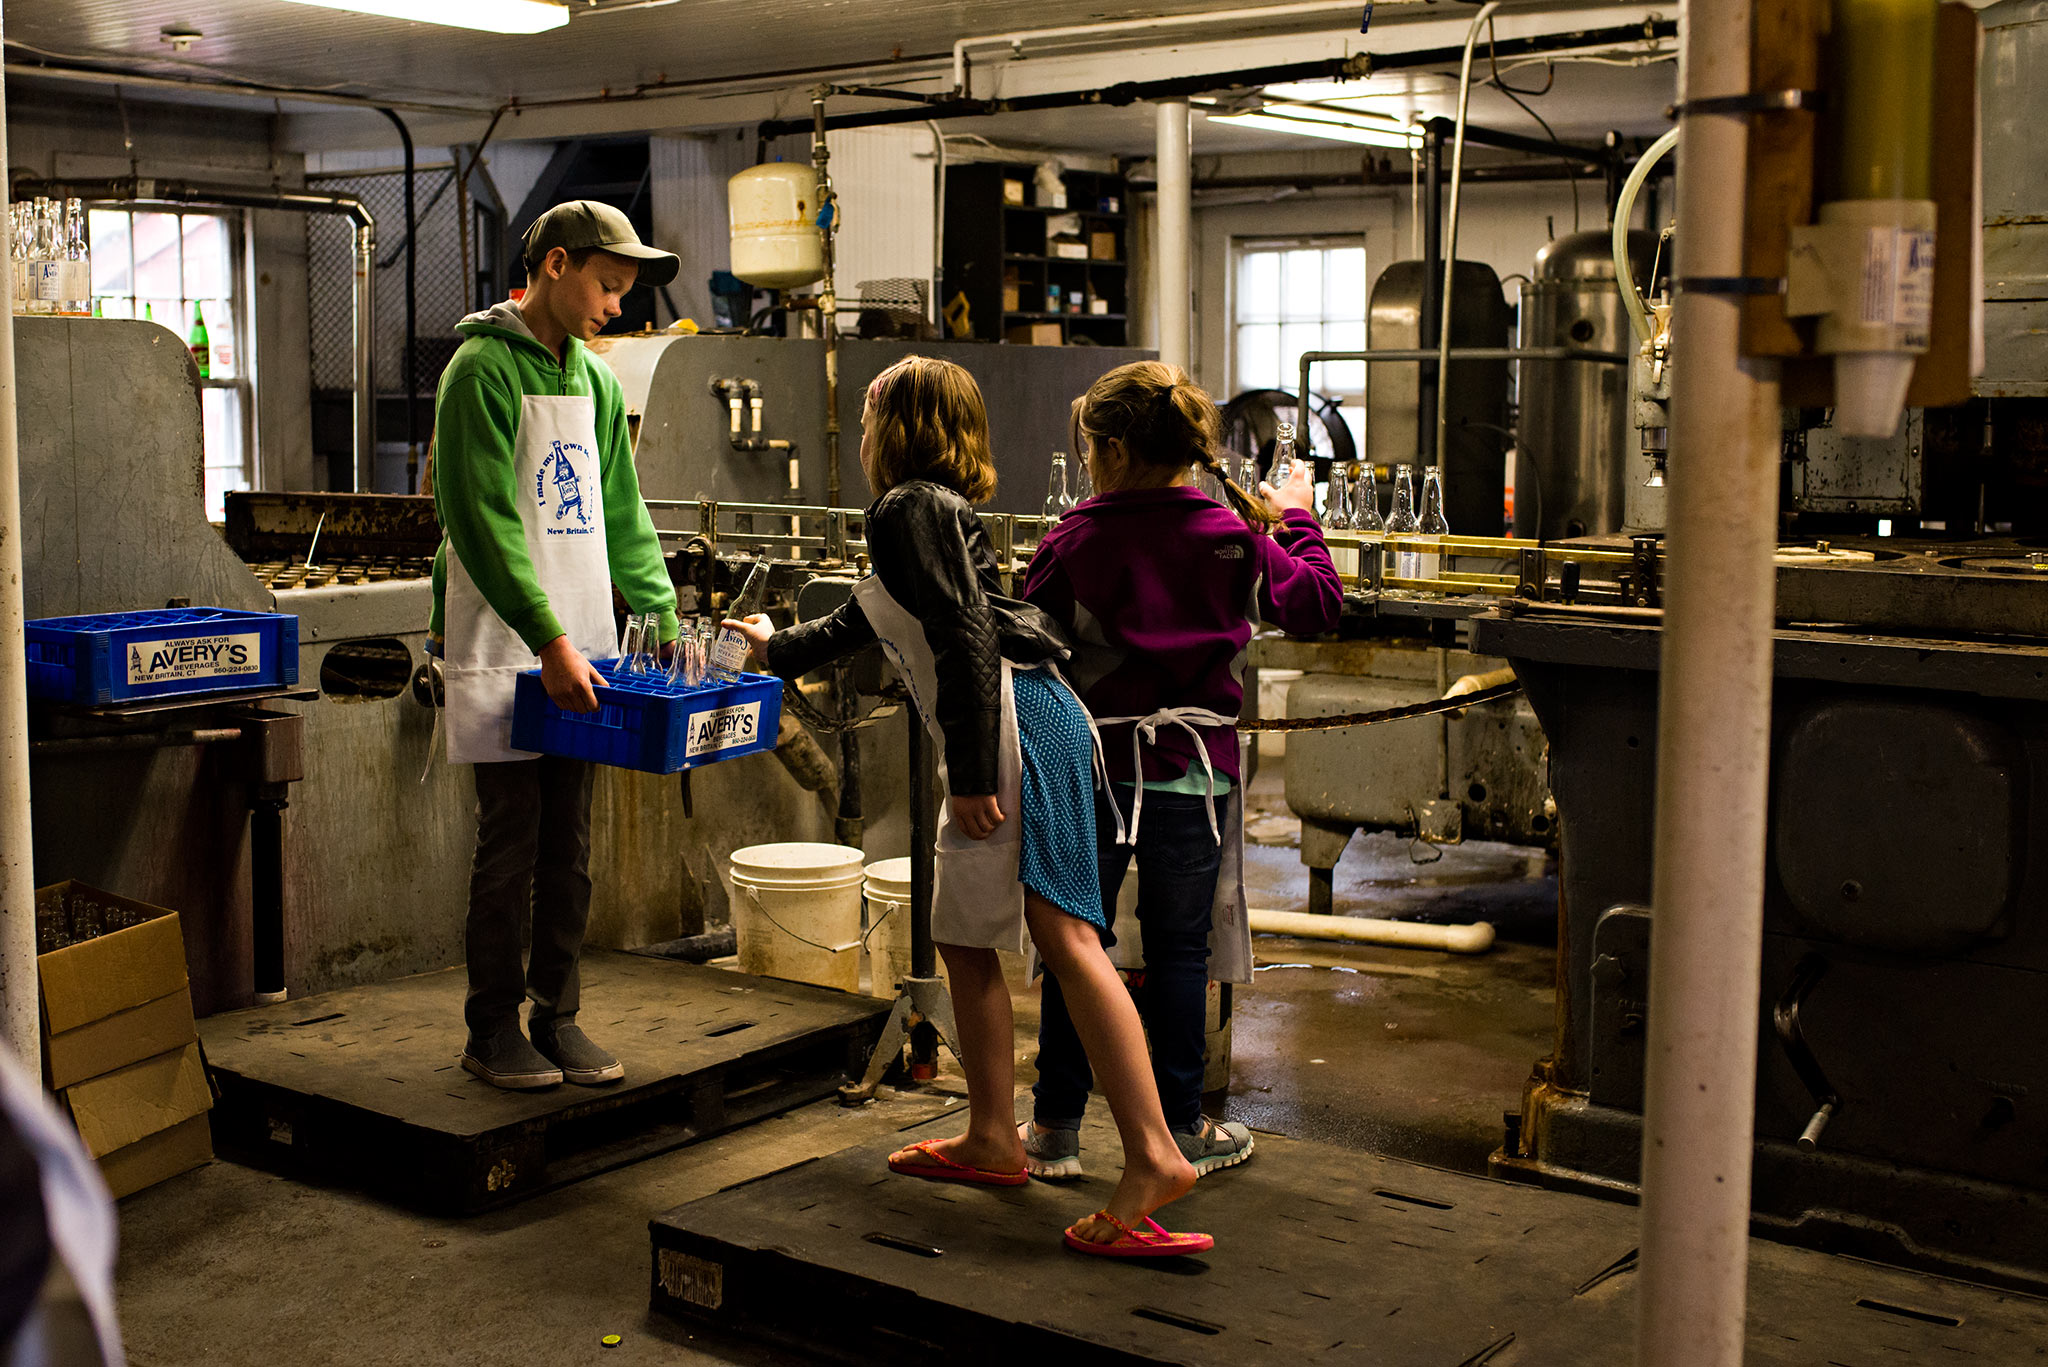 children filling carton with clean soda bottles averys soda connecticut documentary photographer